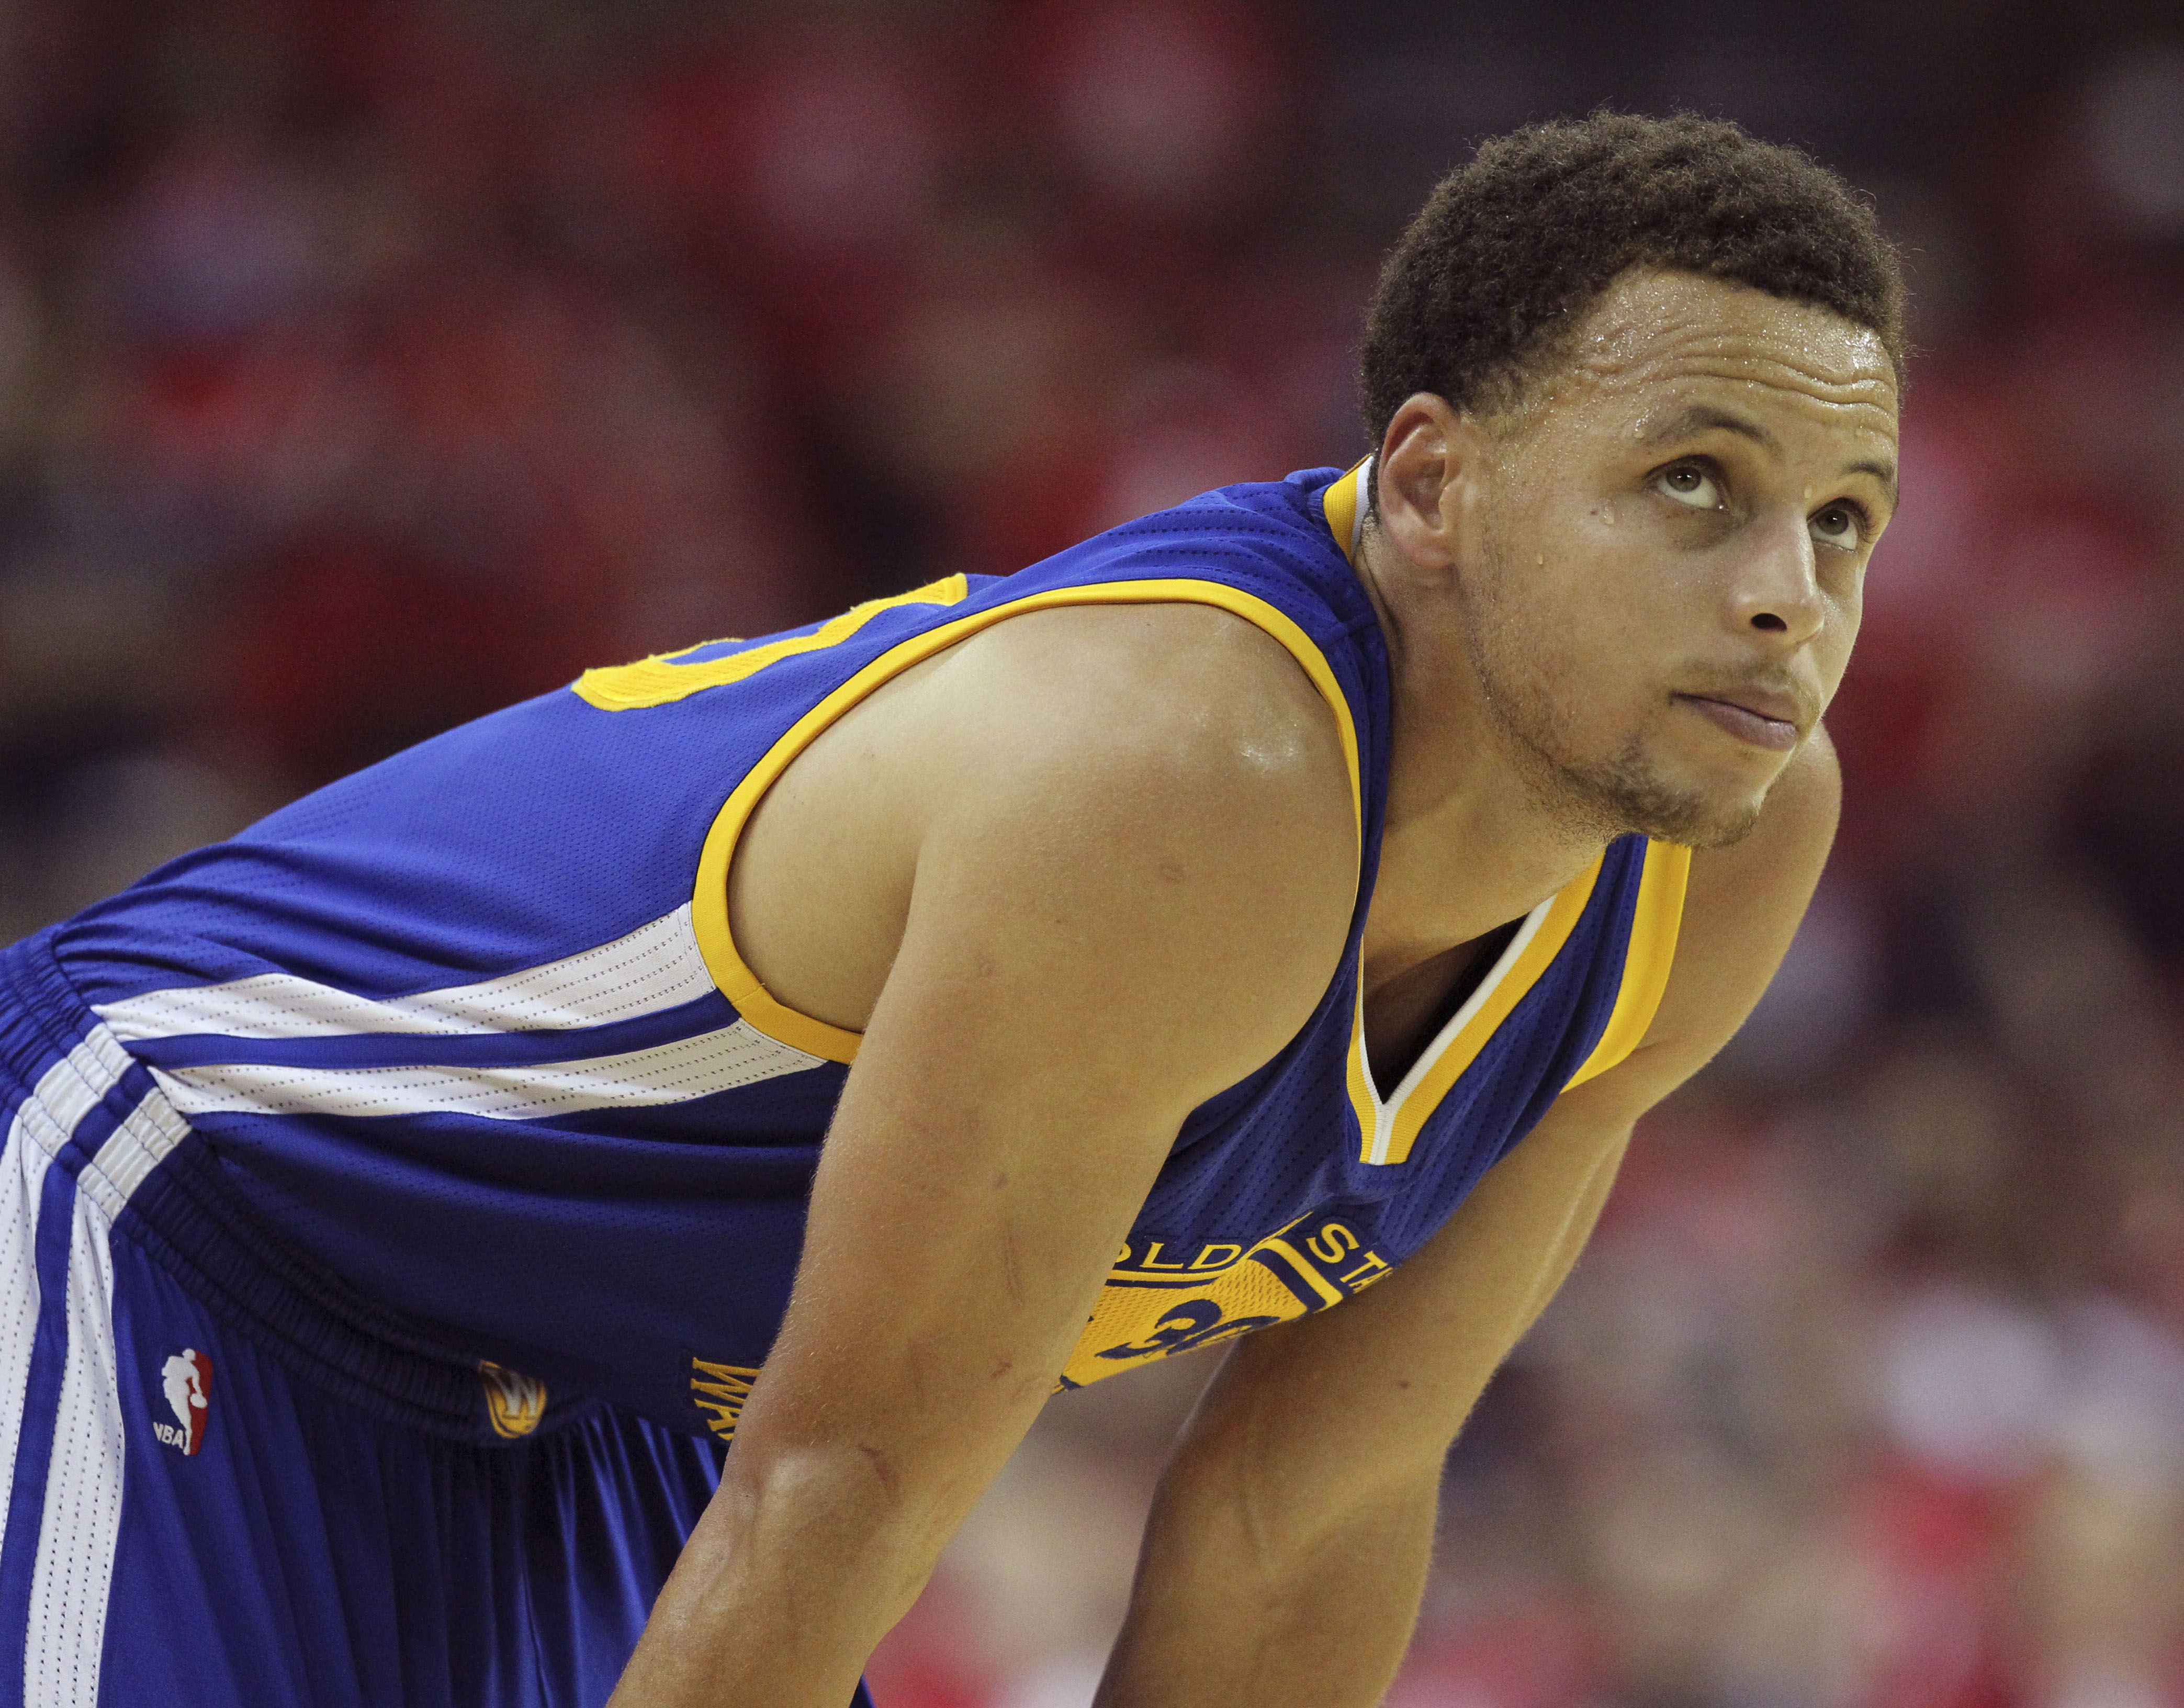 Golden State Warriors guard Stephen Curry takes a breather during the second half against the Houston Rocket in game four of the Western Conference Finals. Thomas B. Shea / USA TODAY Sports.